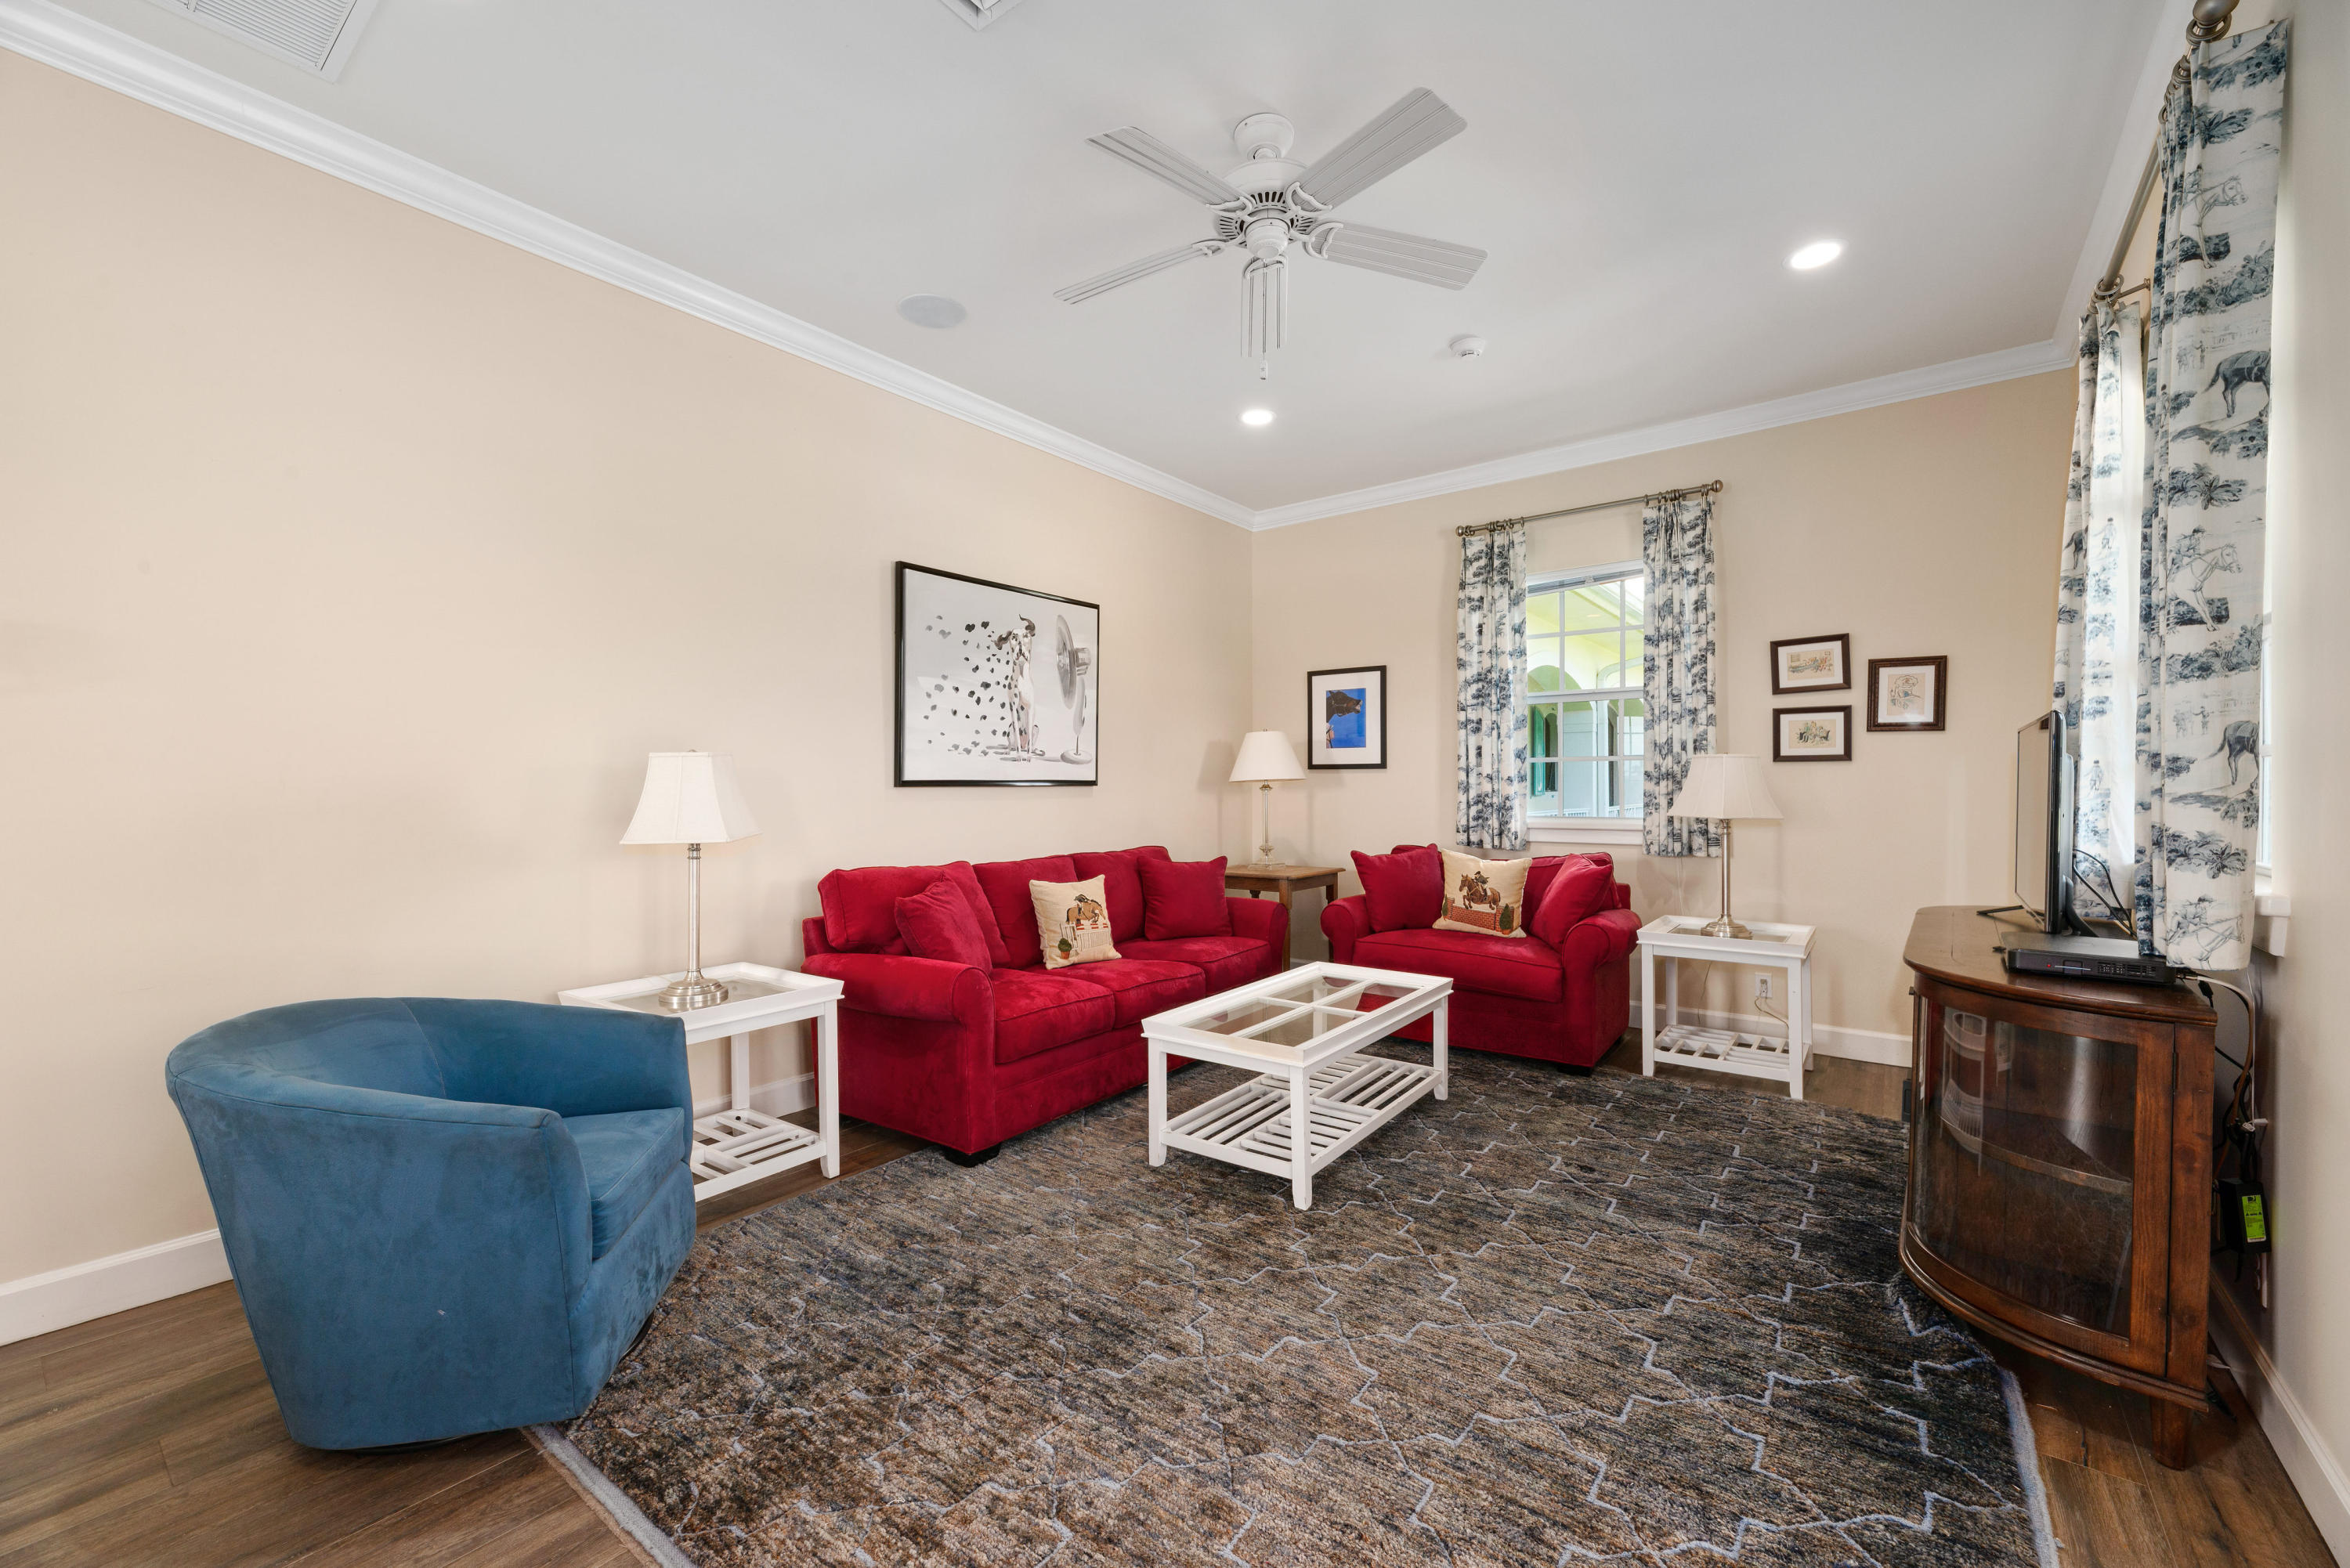 15321 Natures Point Lane, Wellington, Florida 33414, 5 Bedrooms Bedrooms, ,4.2 BathroomsBathrooms,Single Family,For Sale,Palm Beach Point,Natures Point,1,RX-10575948